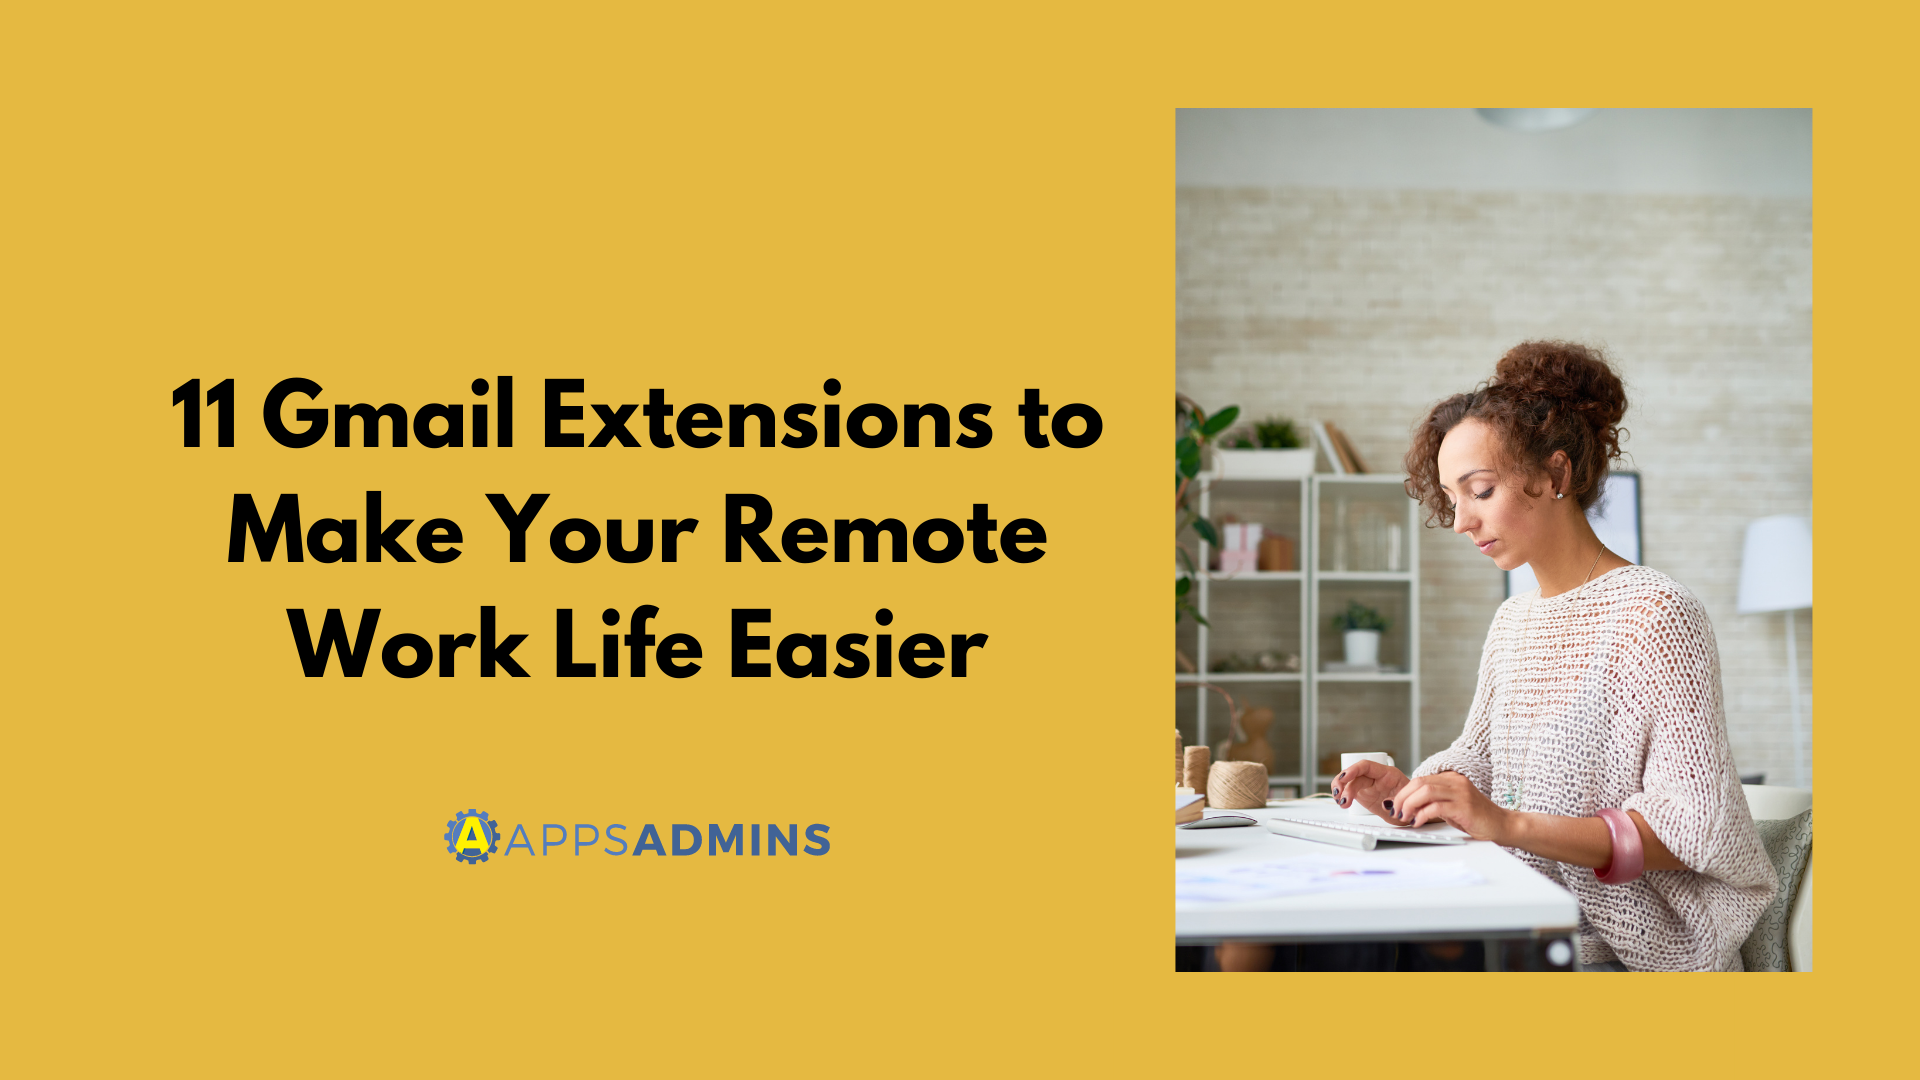 11 Gmail Extensions to Make Your Remote Work Life Easier